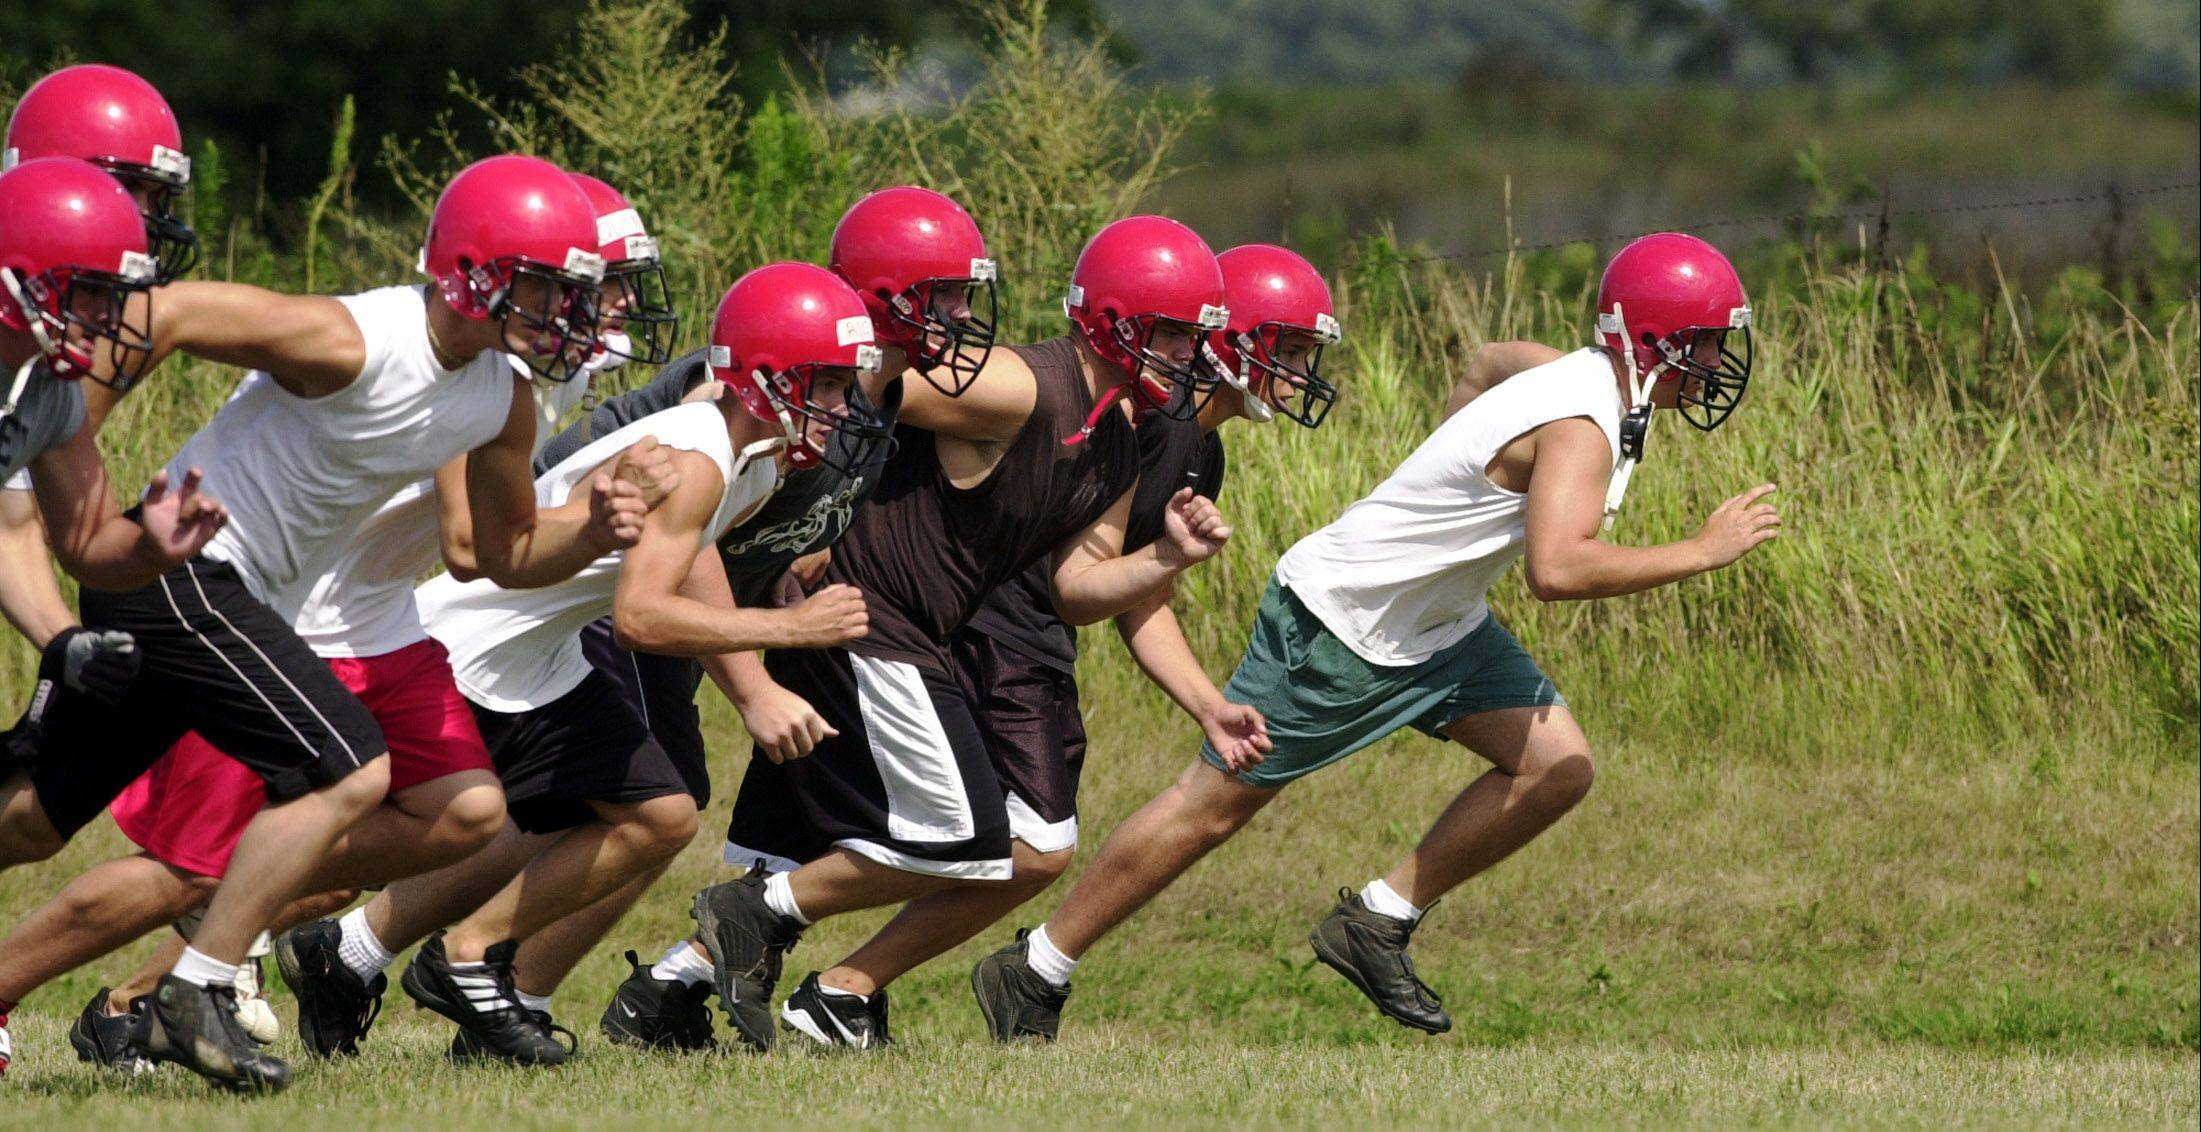 Health officials are emphasizing ways to reduce injuries among student athletes.